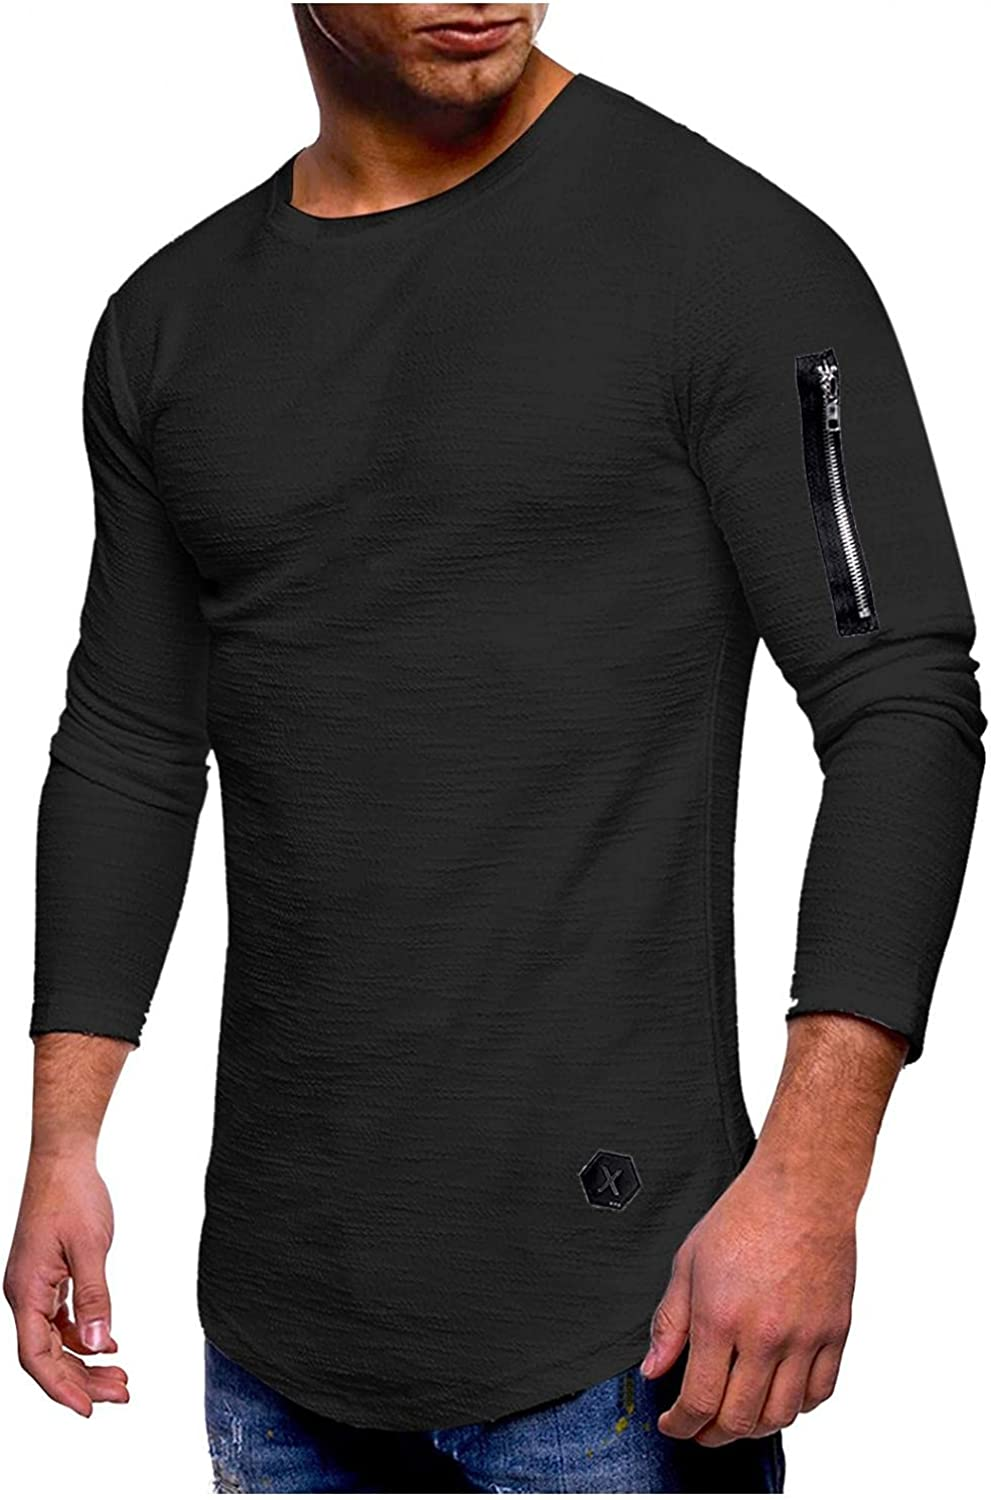 Long Sleeve Tee Shirts for Men Casual Muscle T-Shirts Mens Lightweight Workout Gym Sweatshirts Sport Pullover Tops